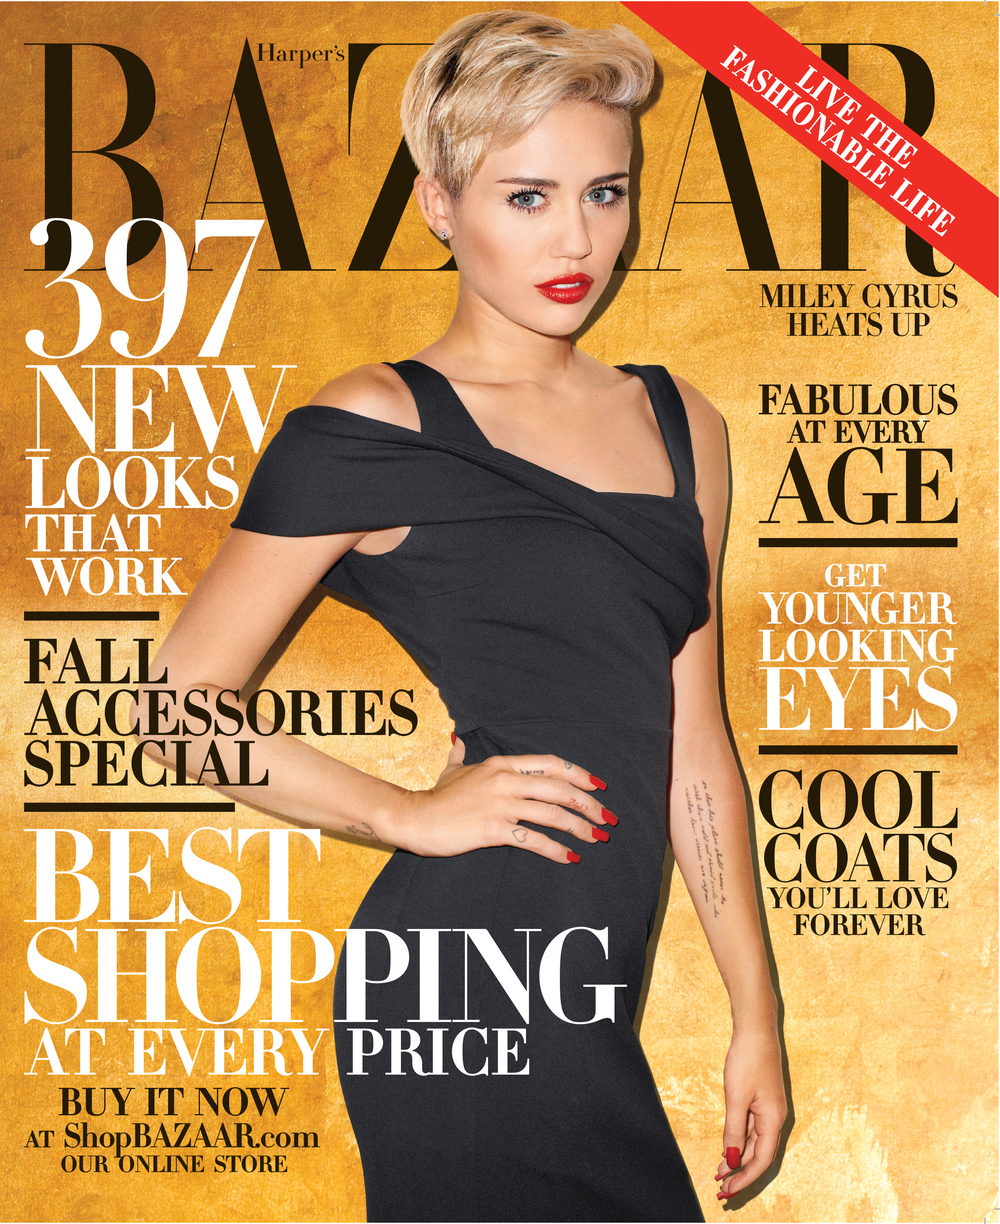 TR_Miley_Cyrus_cant_stop_wont_stop_Harpers_bazaar_September_2013_cover_01.jpg